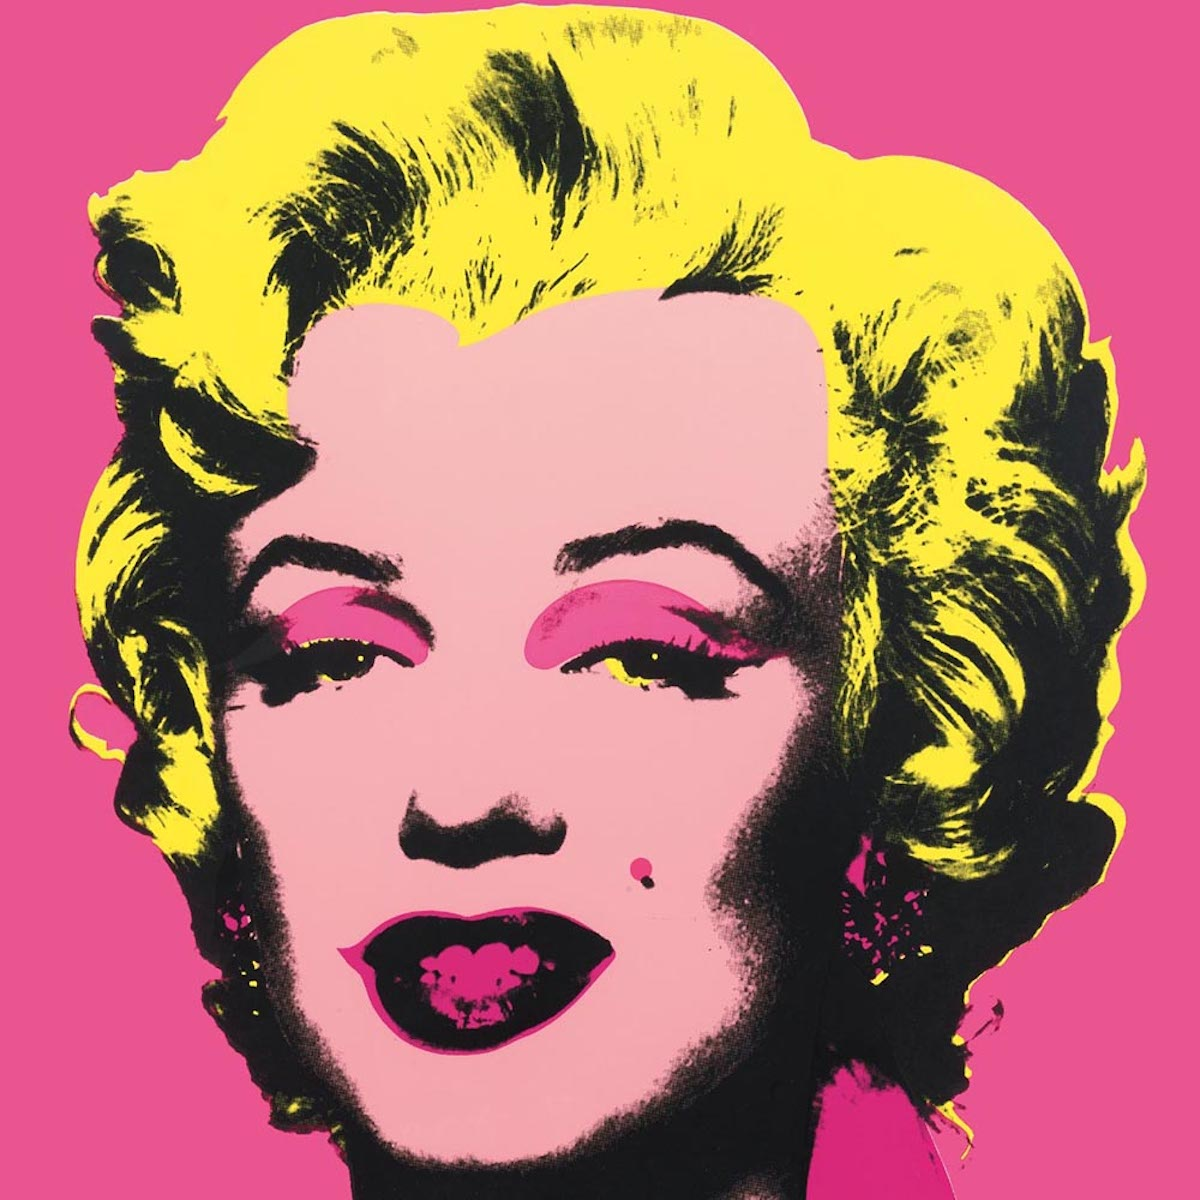 Marilyn 31 by Andy Warhol, basic scanned image.